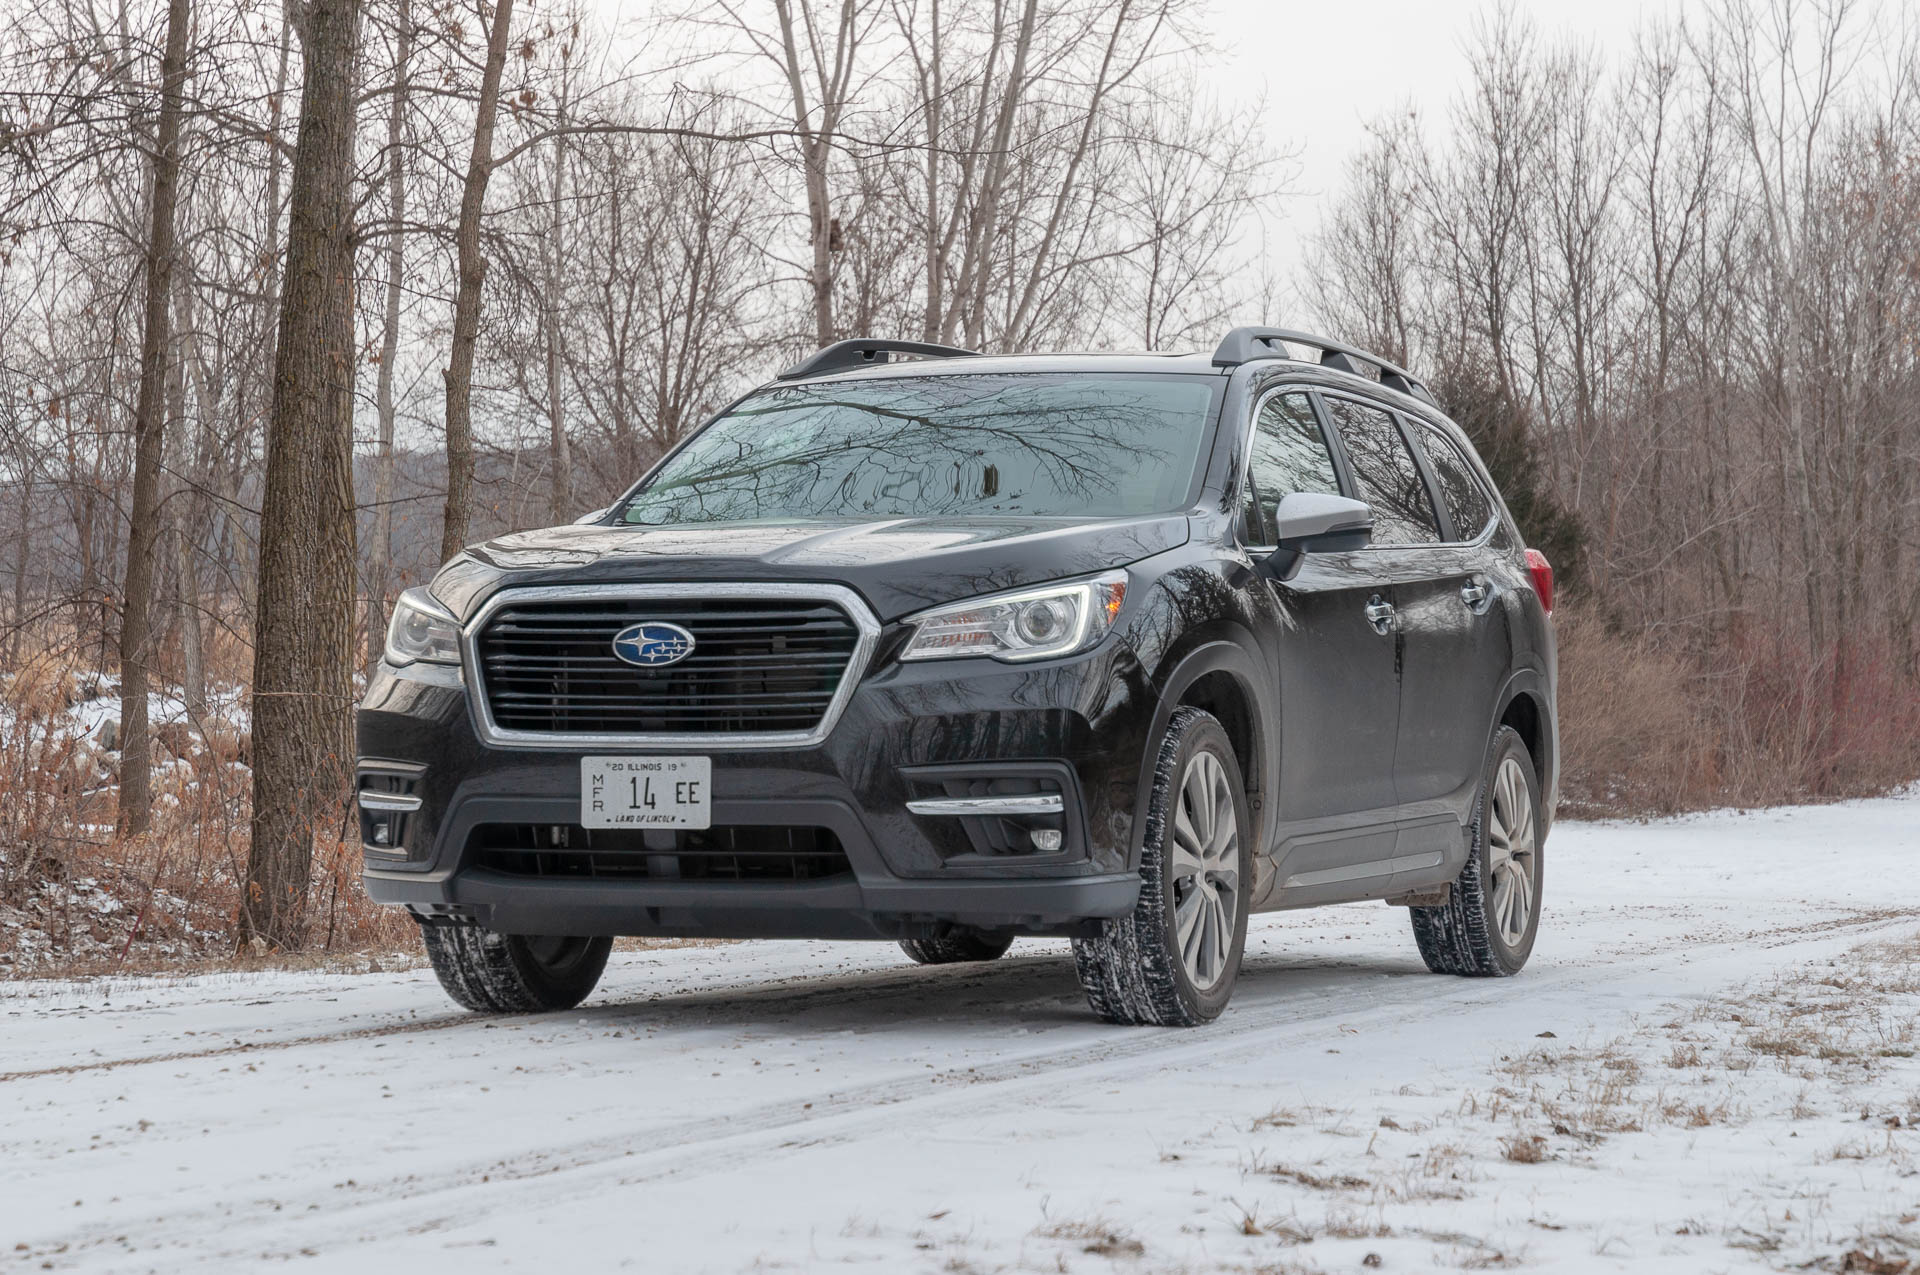 Review update: The 2019 Subaru Ascent crossover SUV is an